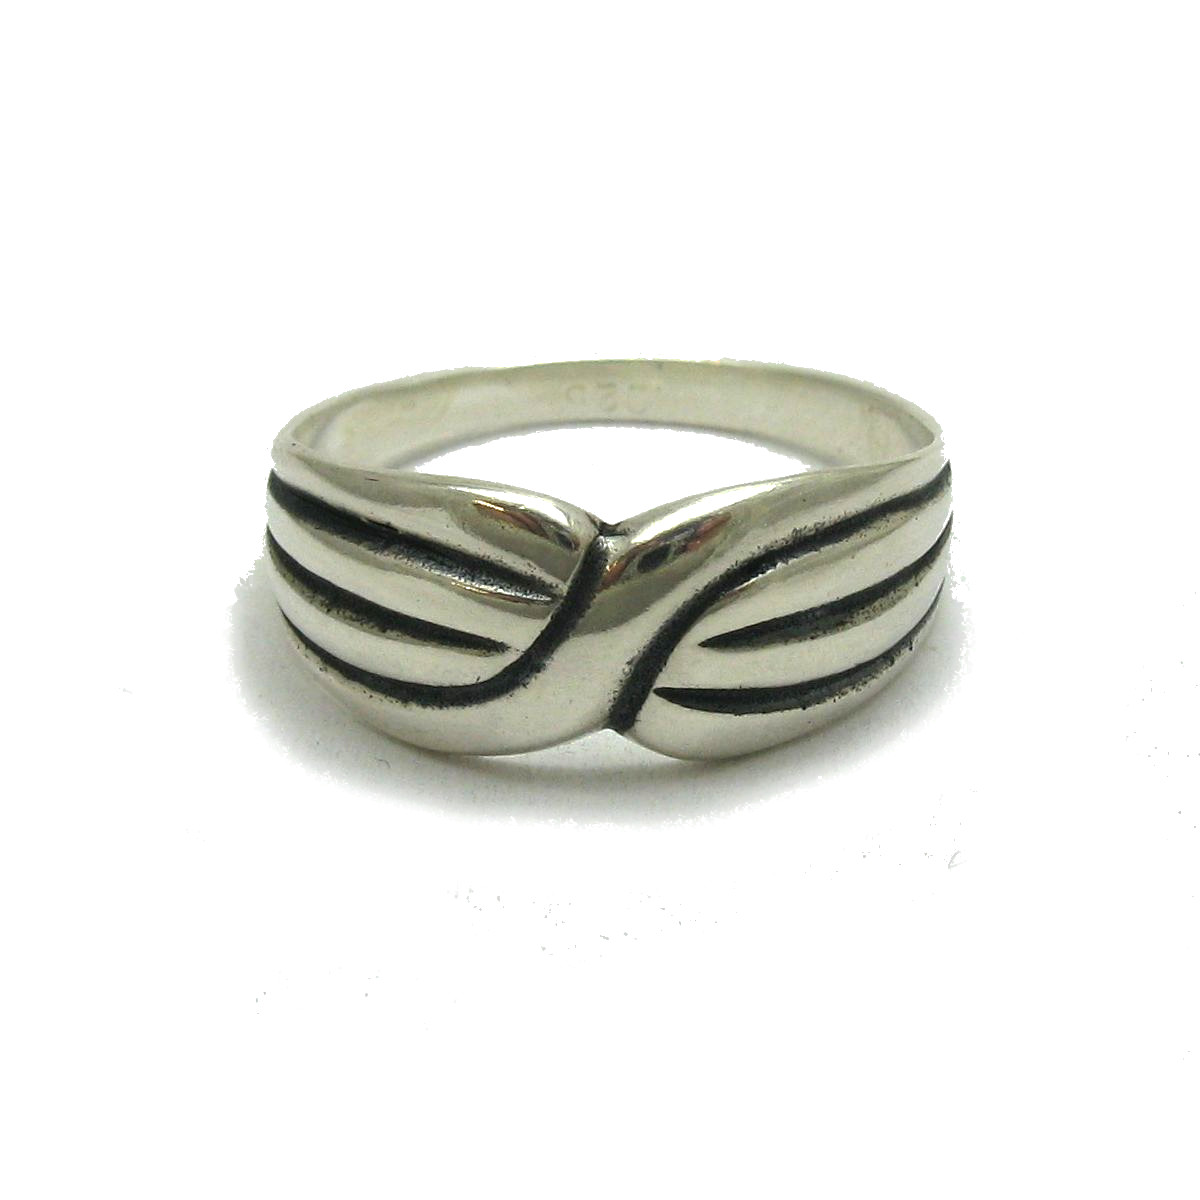 Silver ring - R001742